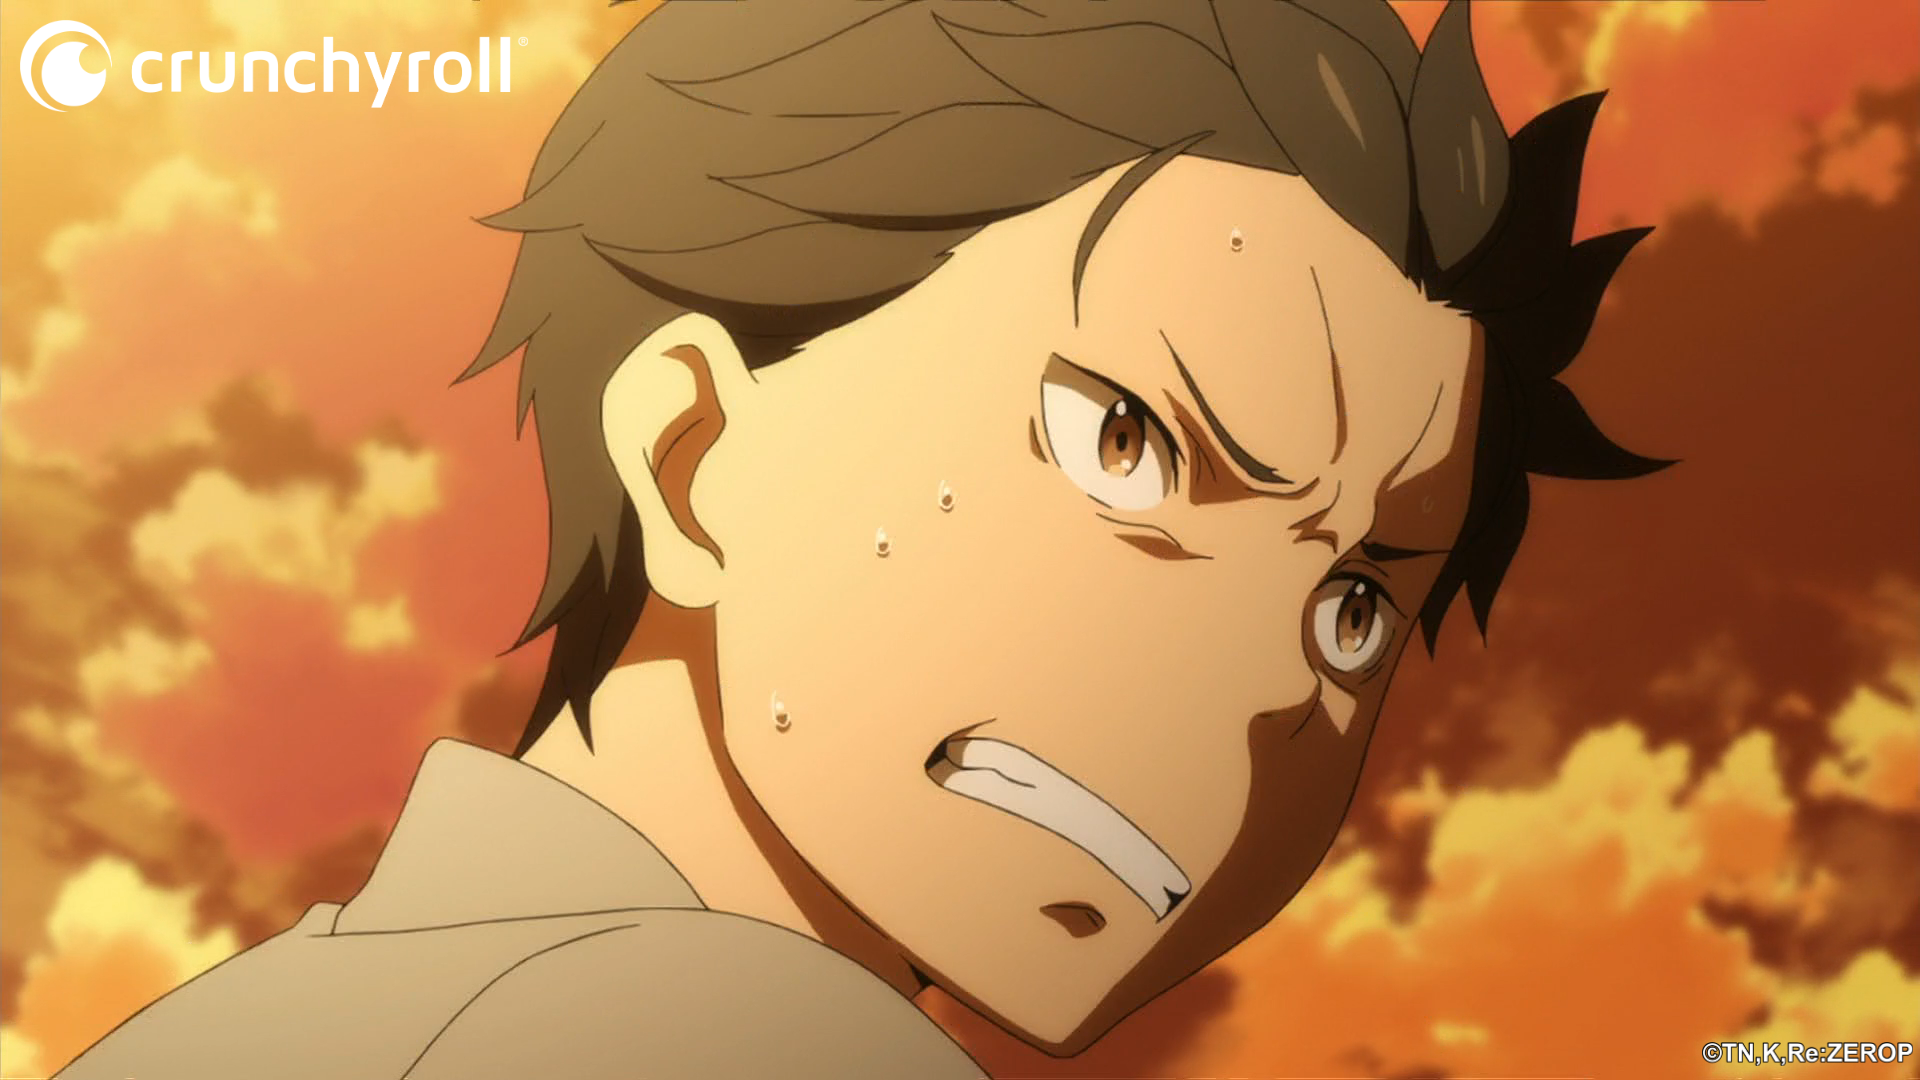 Natsuki Subara prepares to fling himself off of a cliff in order to reset the timeline in a scene from the Re:ZERO -Starting Life in Another World- TV anime.